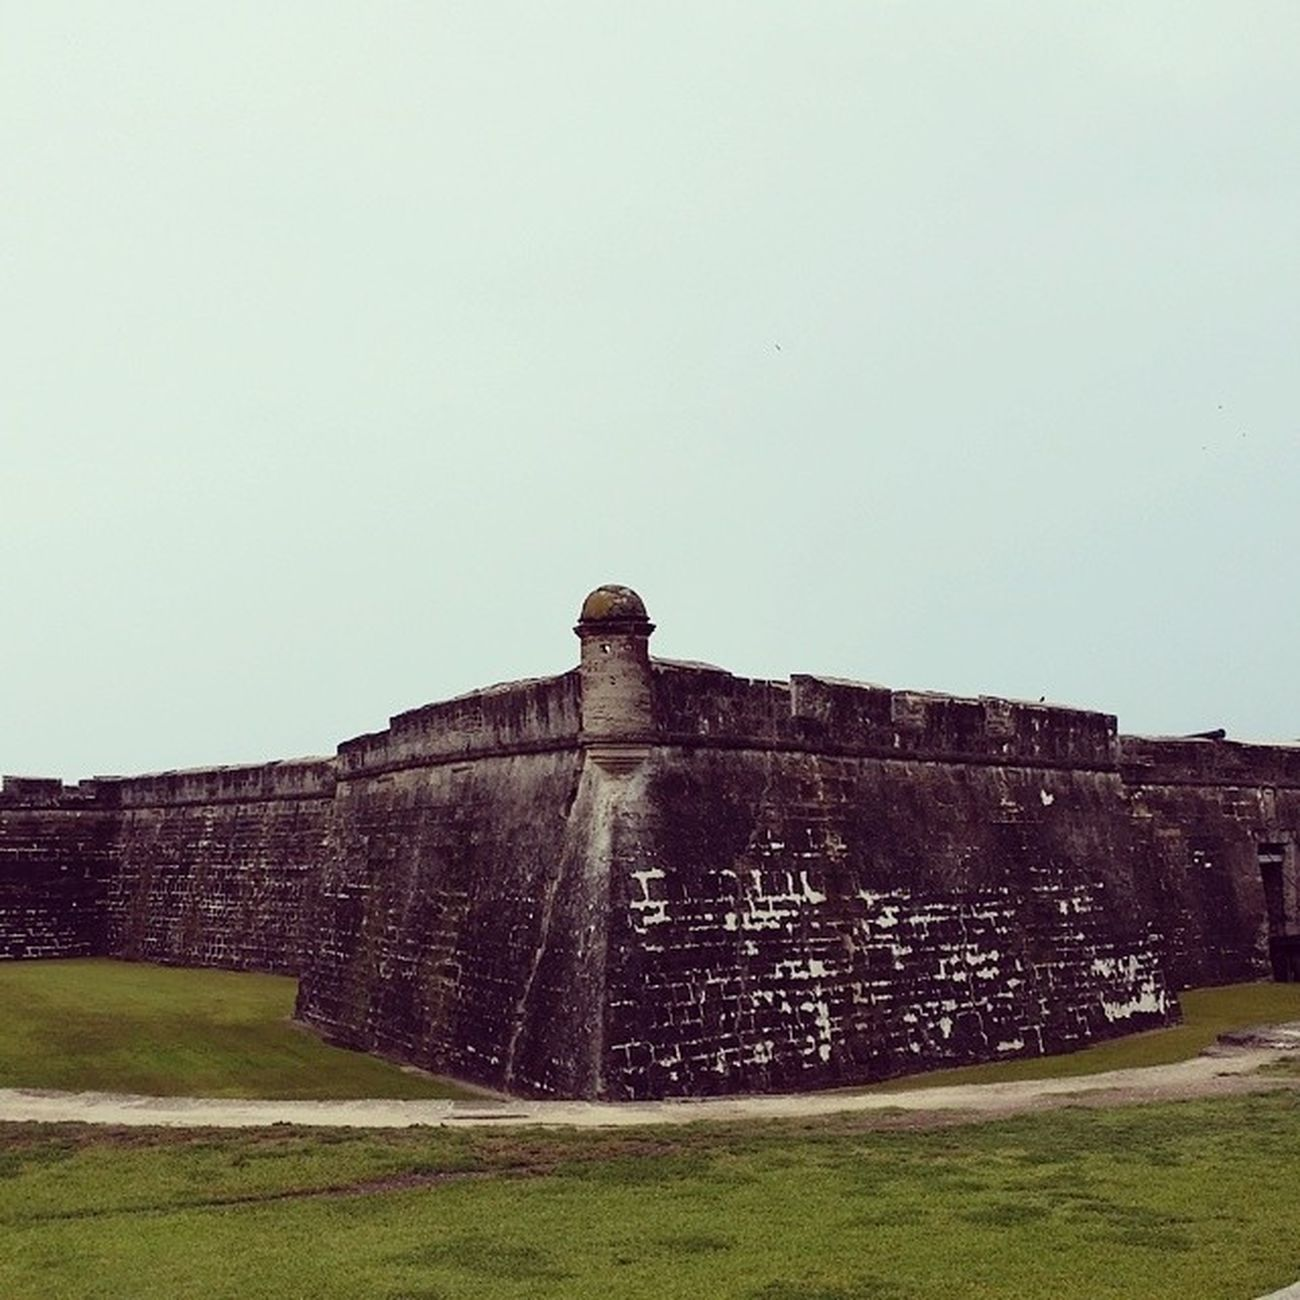 Then we went to Castillo De San Marcos. It rained the whole time but it was so much fun! I love learning new things and visiting historical sites. Staugustine Castillodesanmarcos Historybuff Adventuretrip